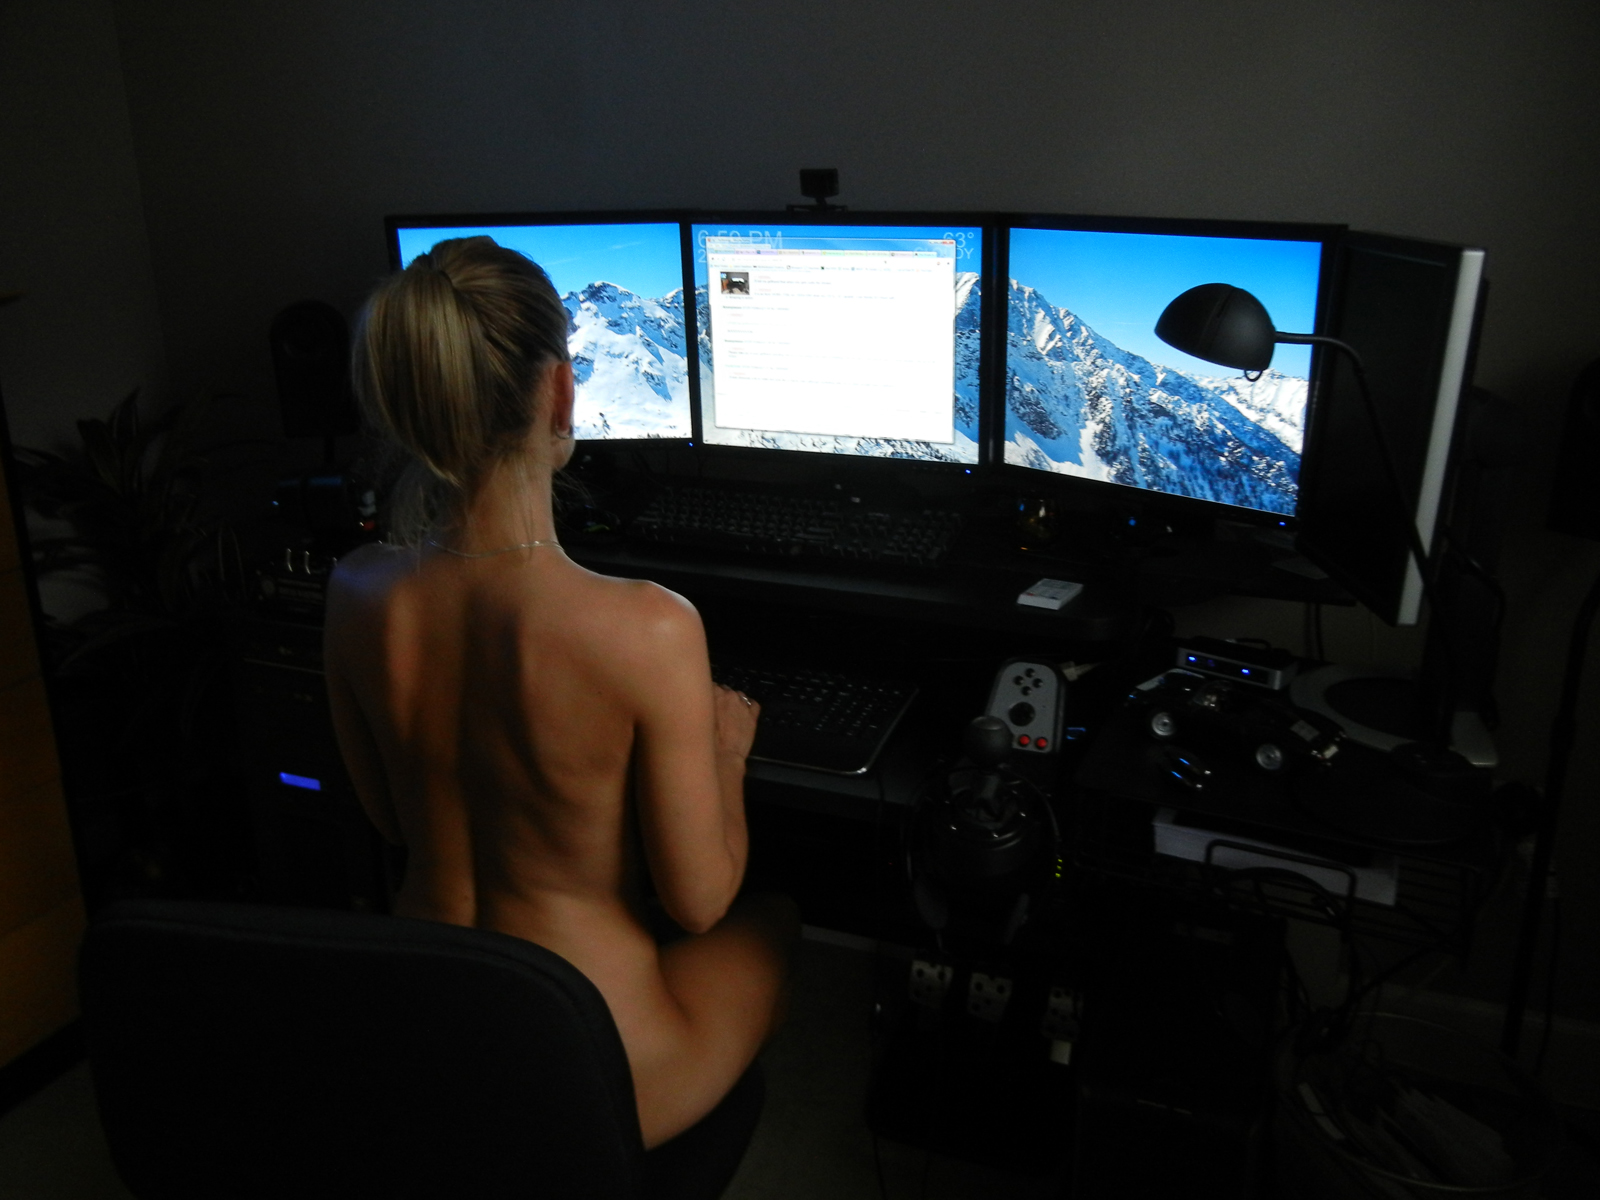 Banging my hot photo gamer gf while she's playing